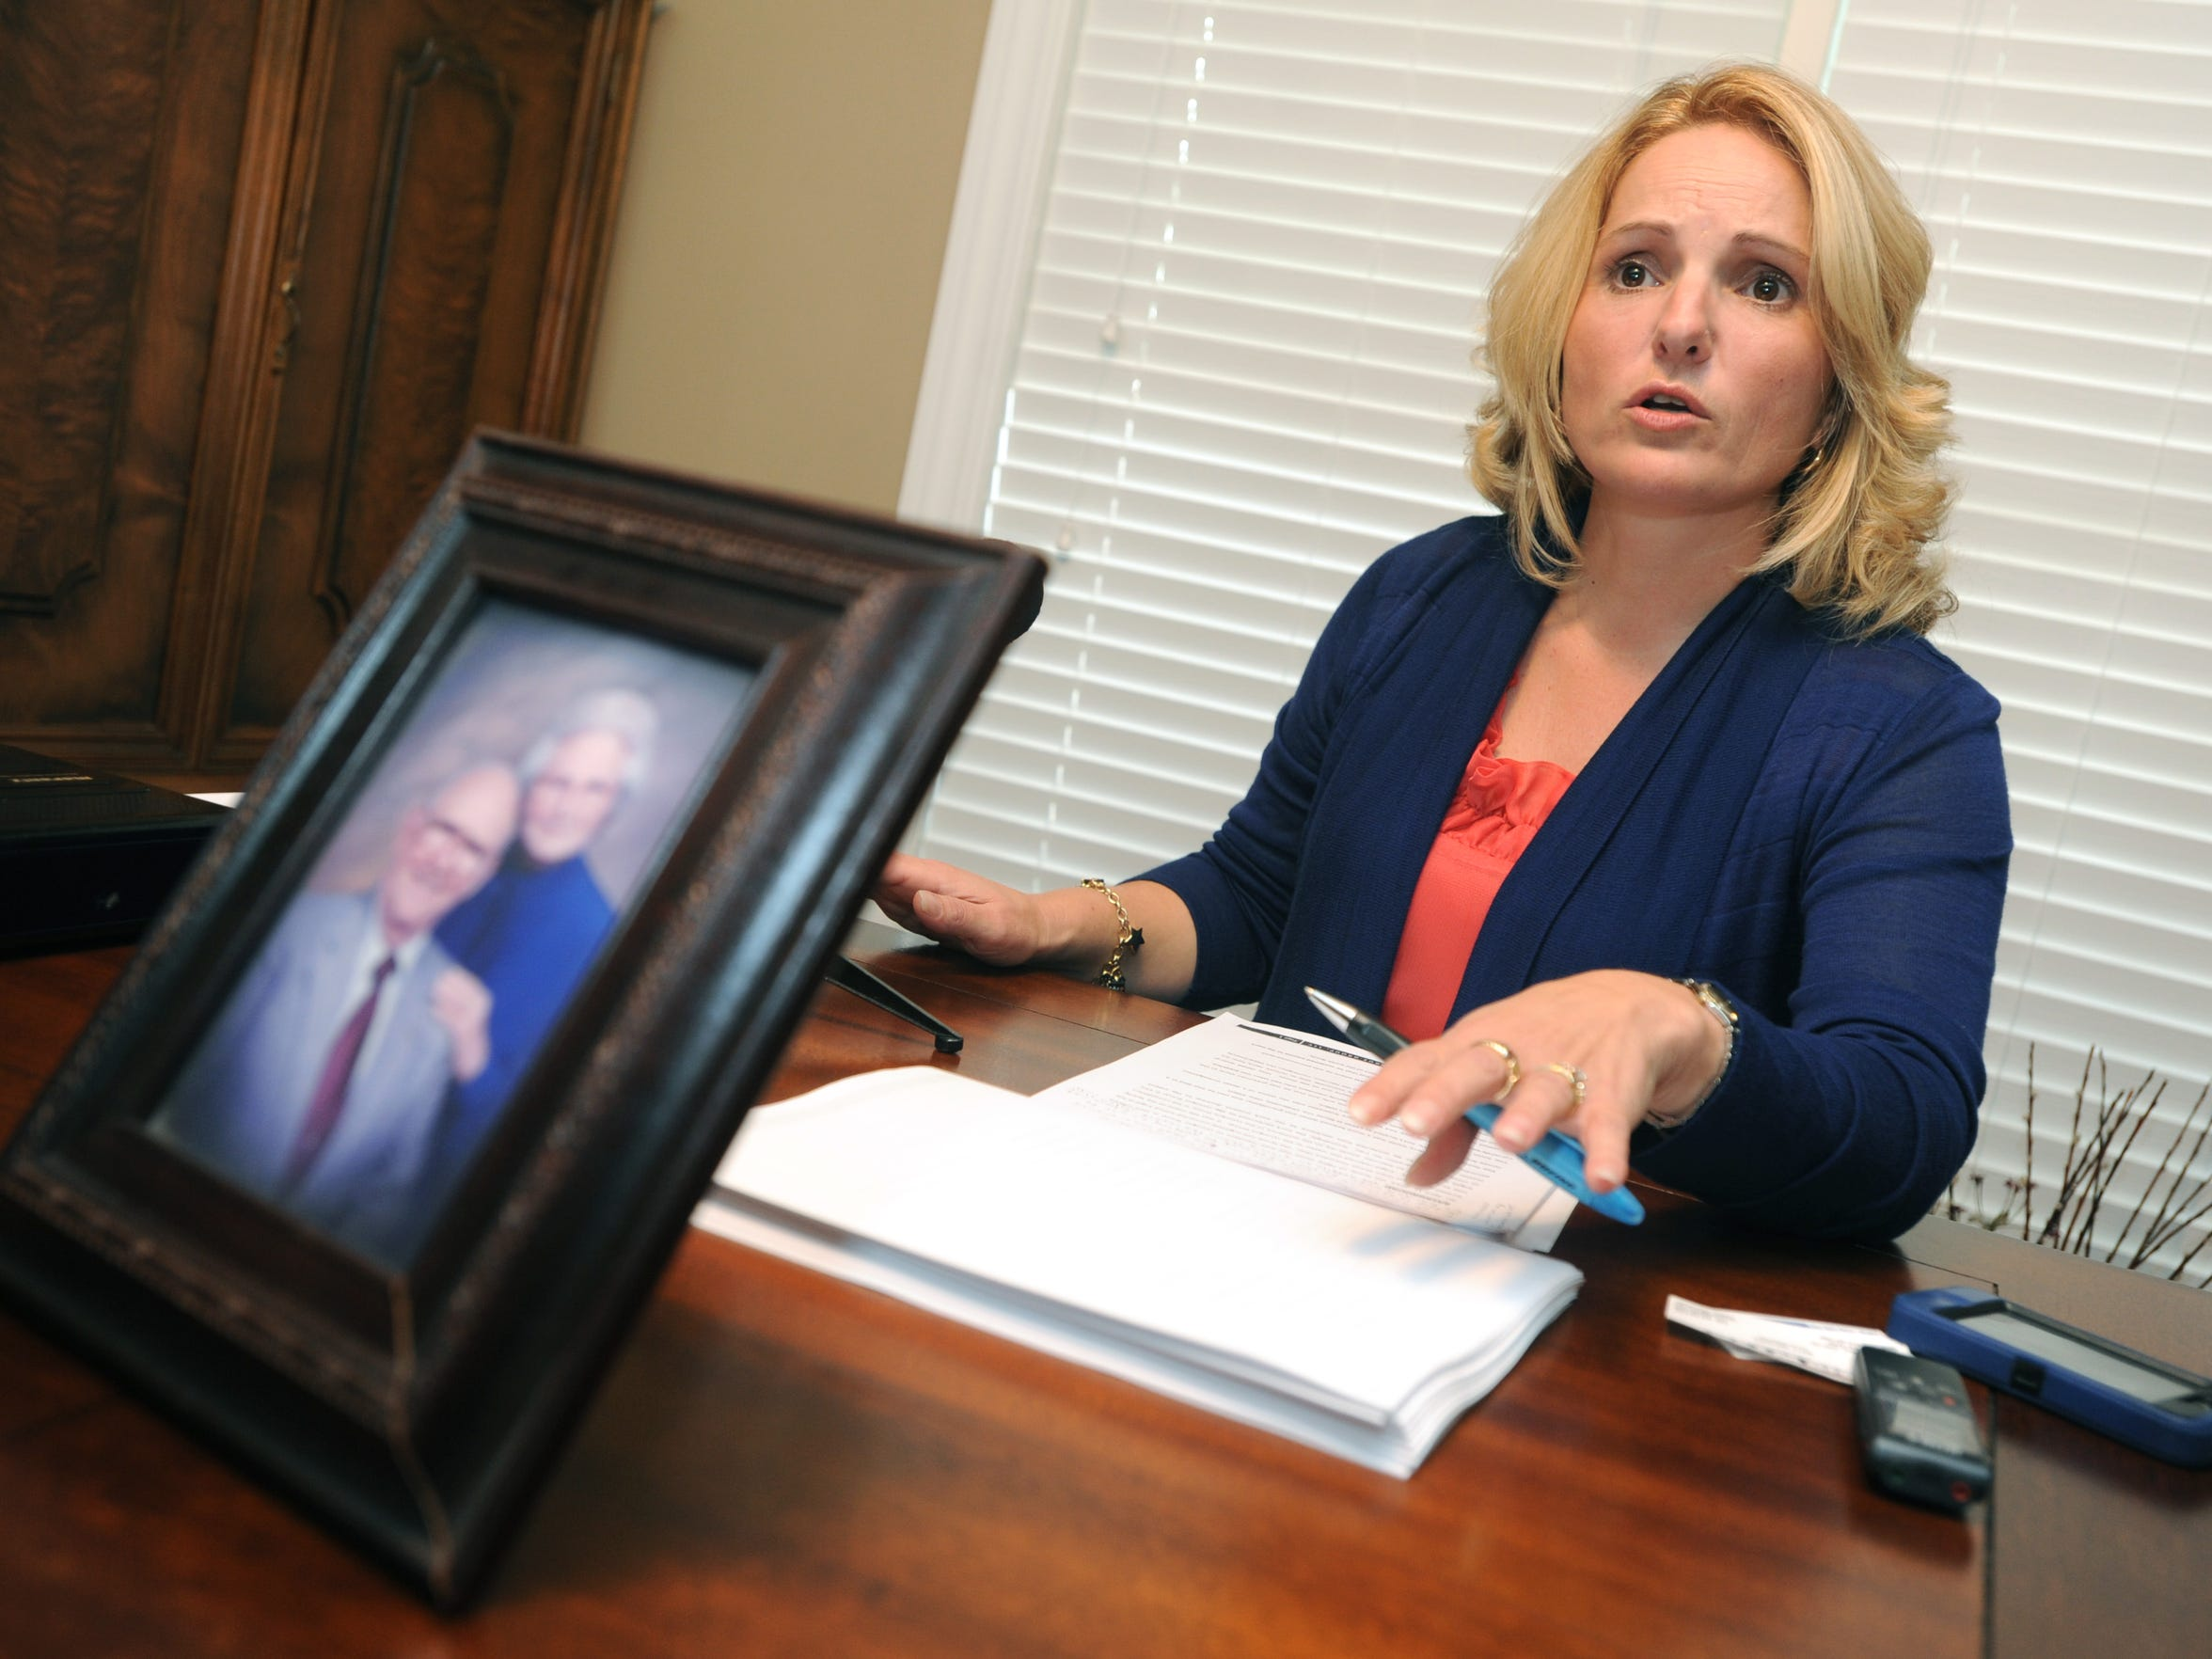 Smith family spokesperson Andrea Smith talks with media about the results of the private investigation into the homicide of Harry Smith in October 2012.